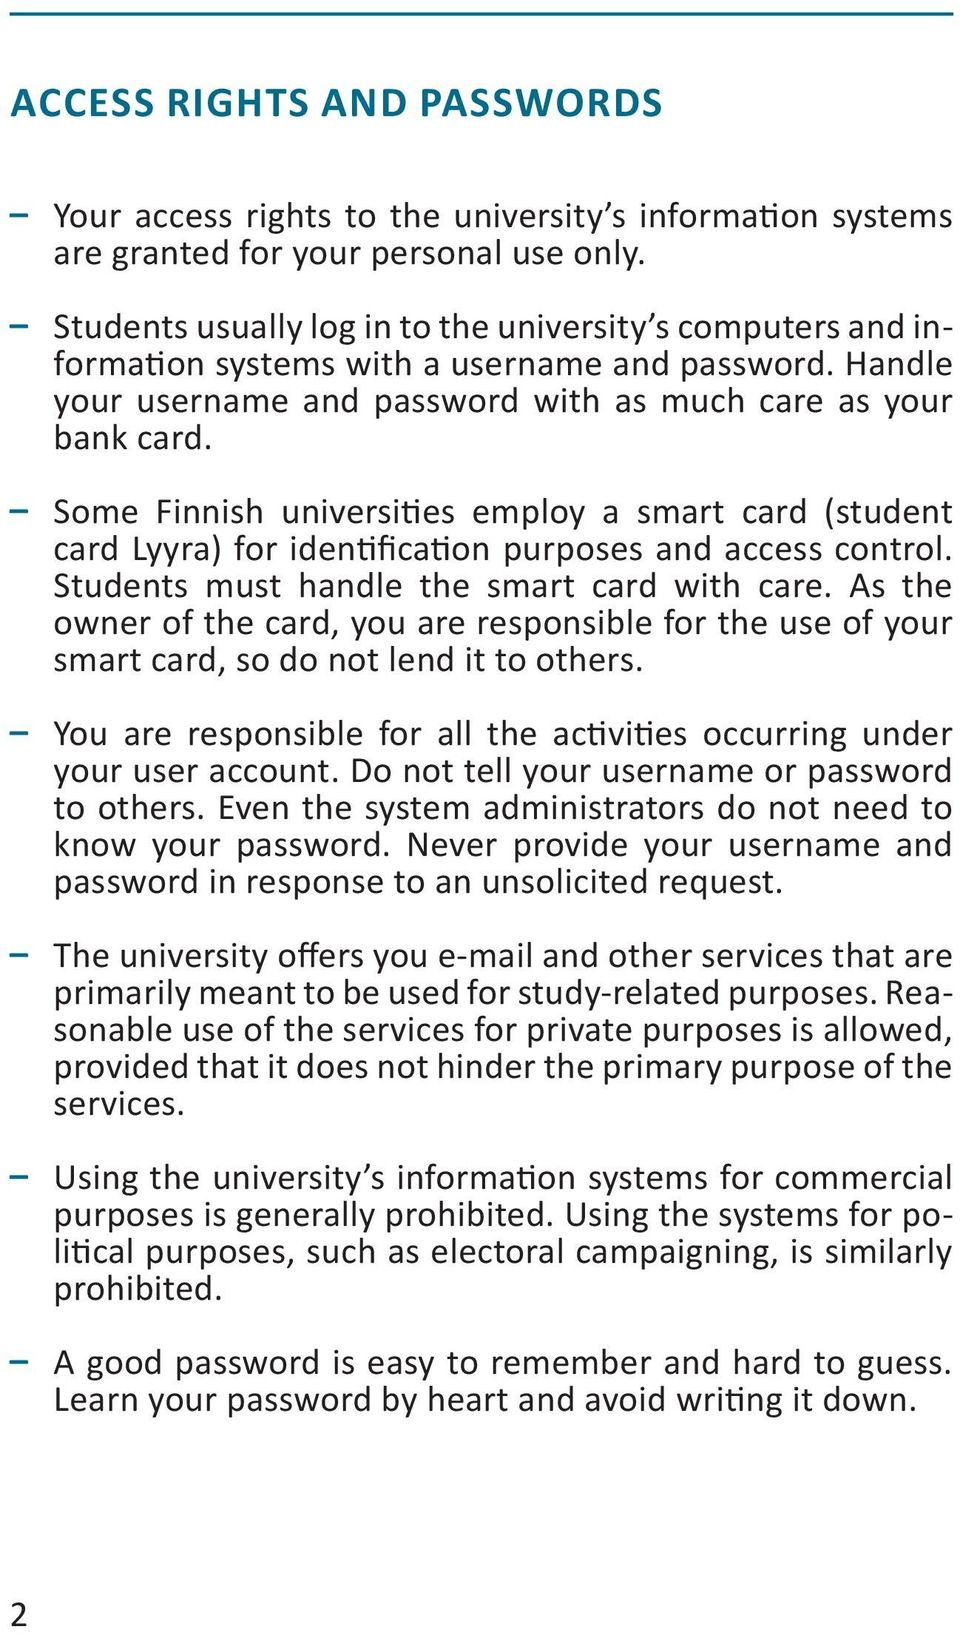 Some Finnish universities employ a smart card (student card Lyyra) for identification purposes and access control. Students must handle the smart card with care.